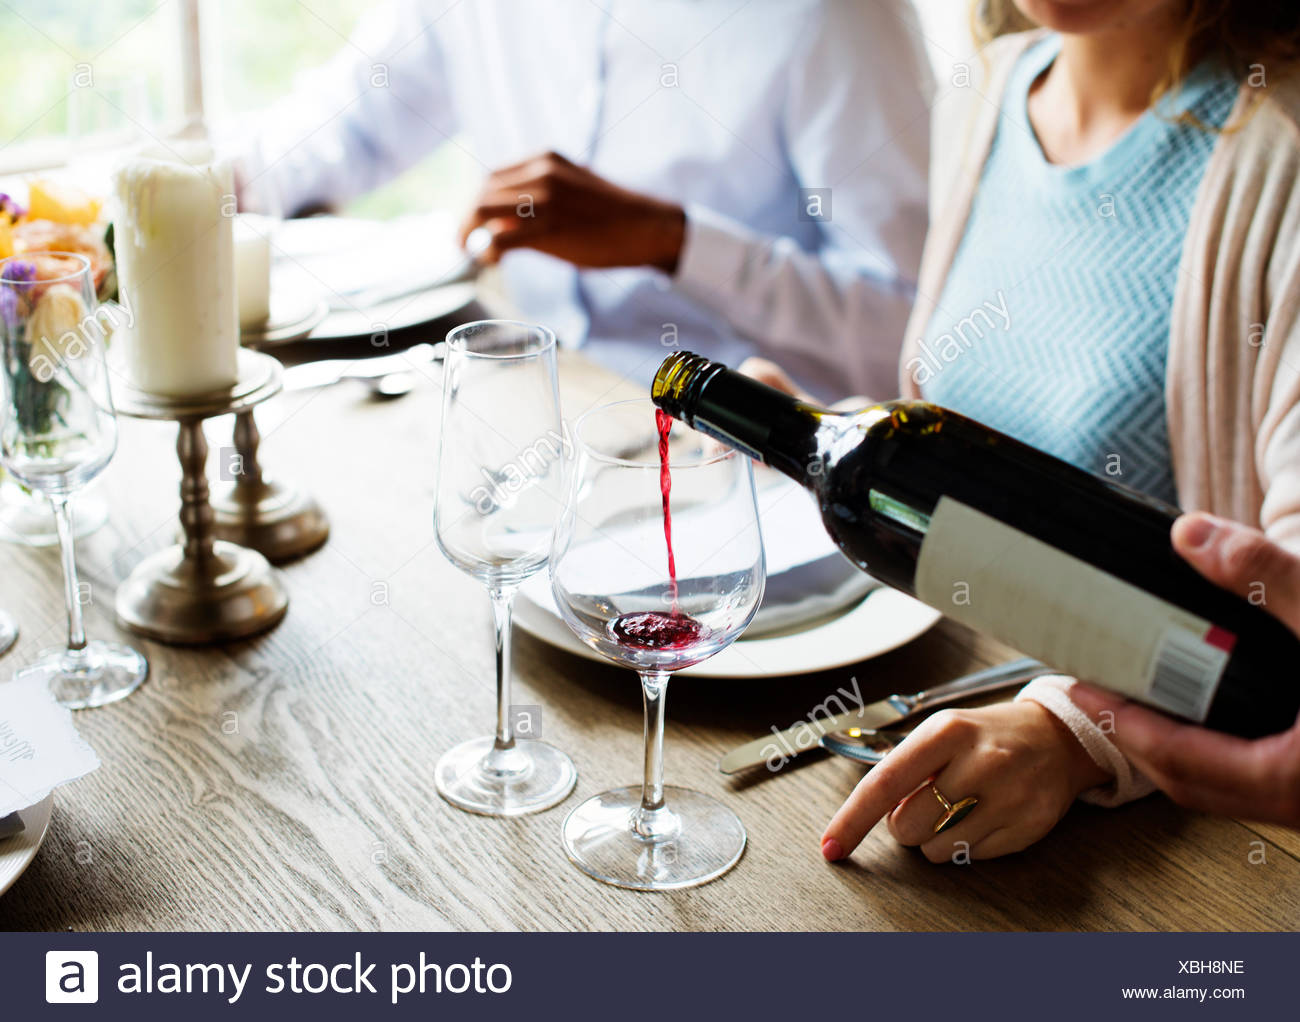 Waiter Poring Serving Red Wine to Customers in a Restaurant - Stock Image